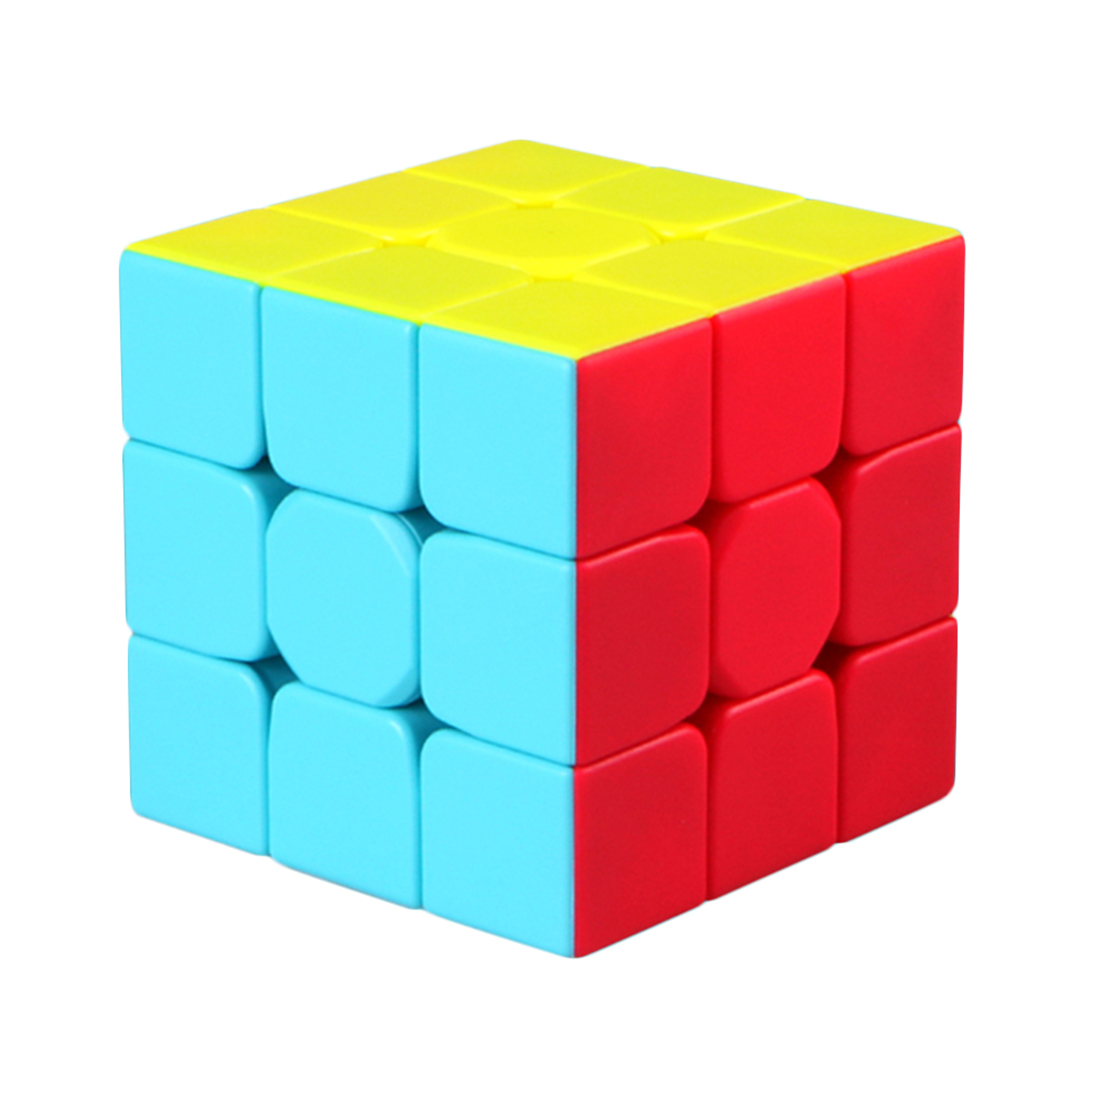 New Qiyi Mofangge Warrior W  5.7cm 3*3*3 Speedcube Vivid Color Scheme 2019 Kids Small Gift